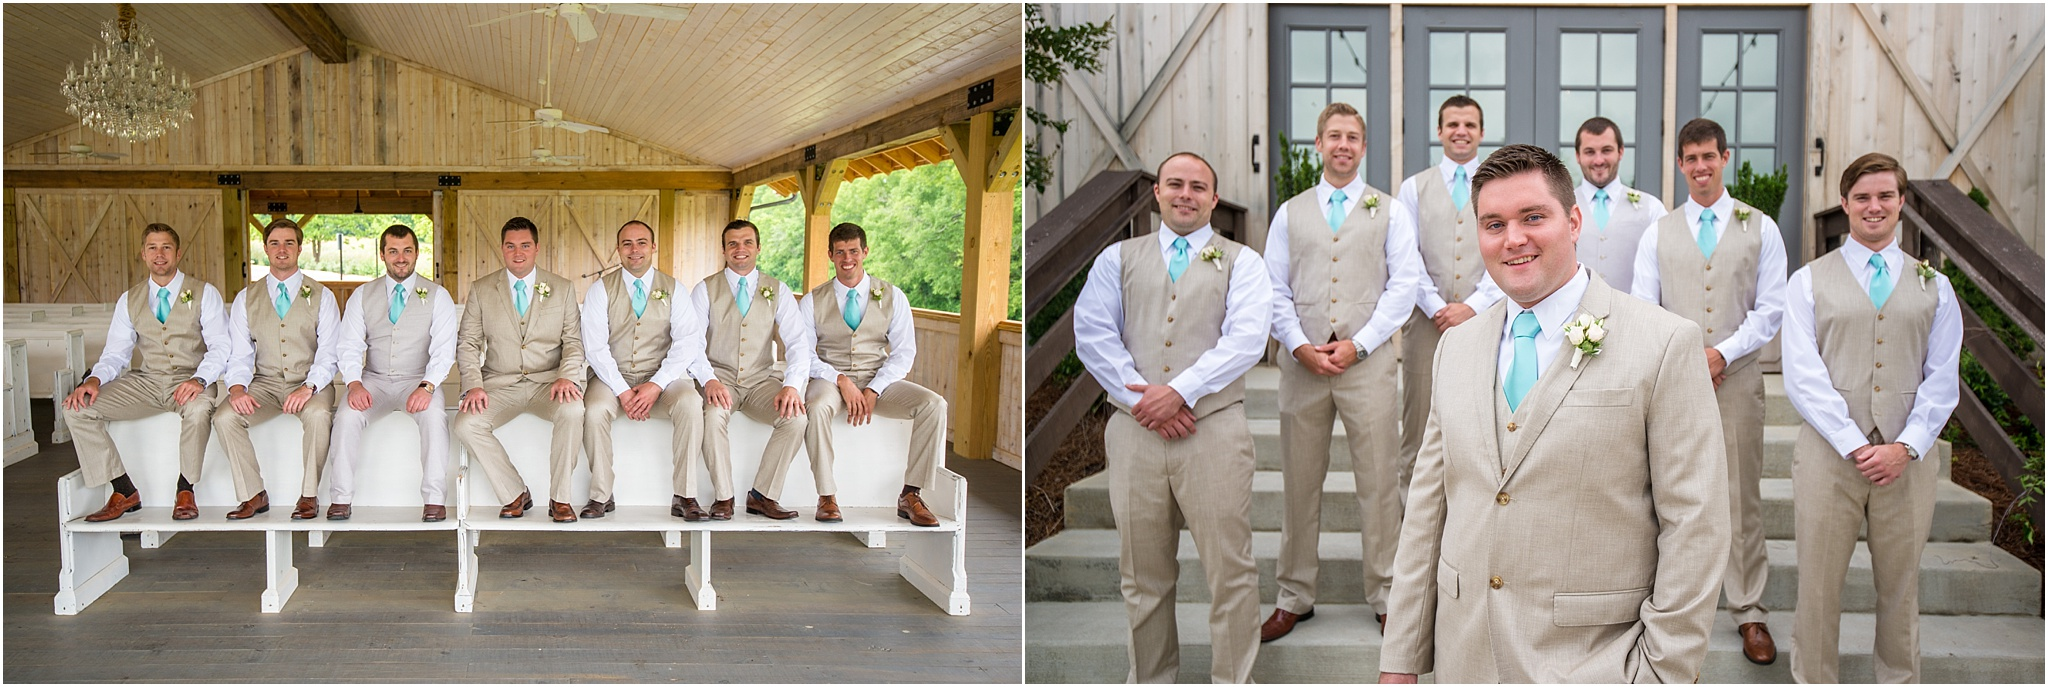 Greg Smit Photography Nashville wedding photographer Mint Springs Farm  4